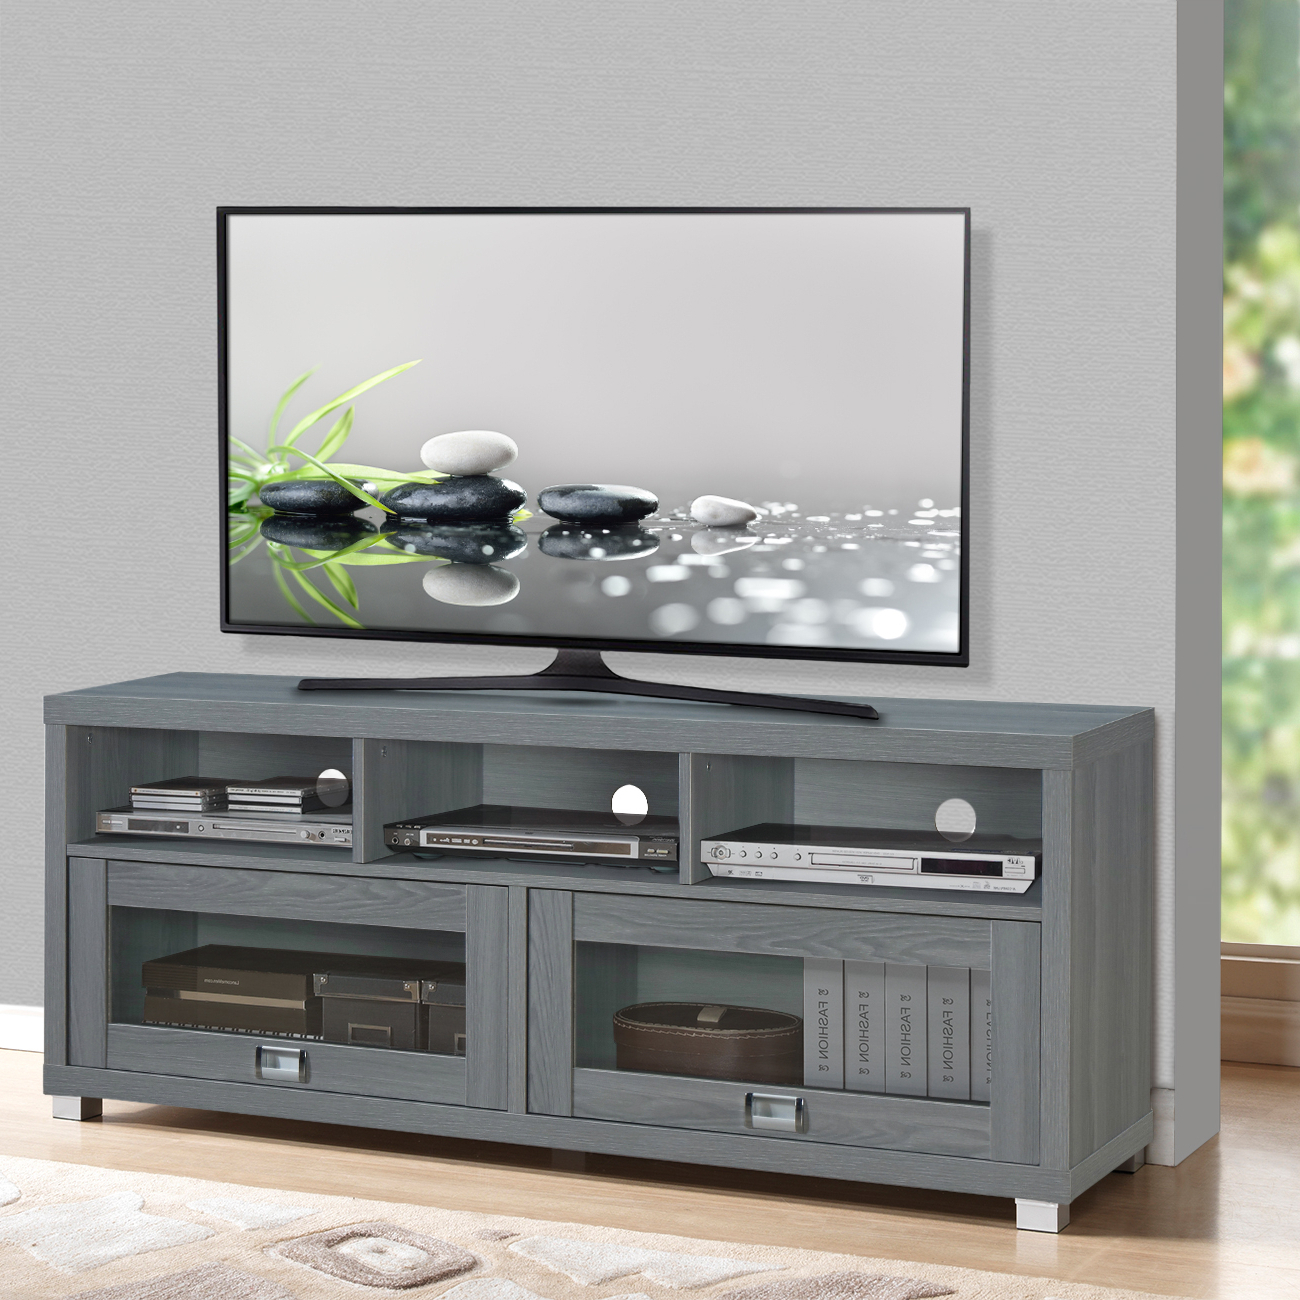 """Mclelland Tv Stands For Tvs Up To 50"""" Pertaining To Most Recently Released Flat Screen Tv Stand Up To 75 Inch 50 55 60 65 70 55in (View 14 of 25)"""